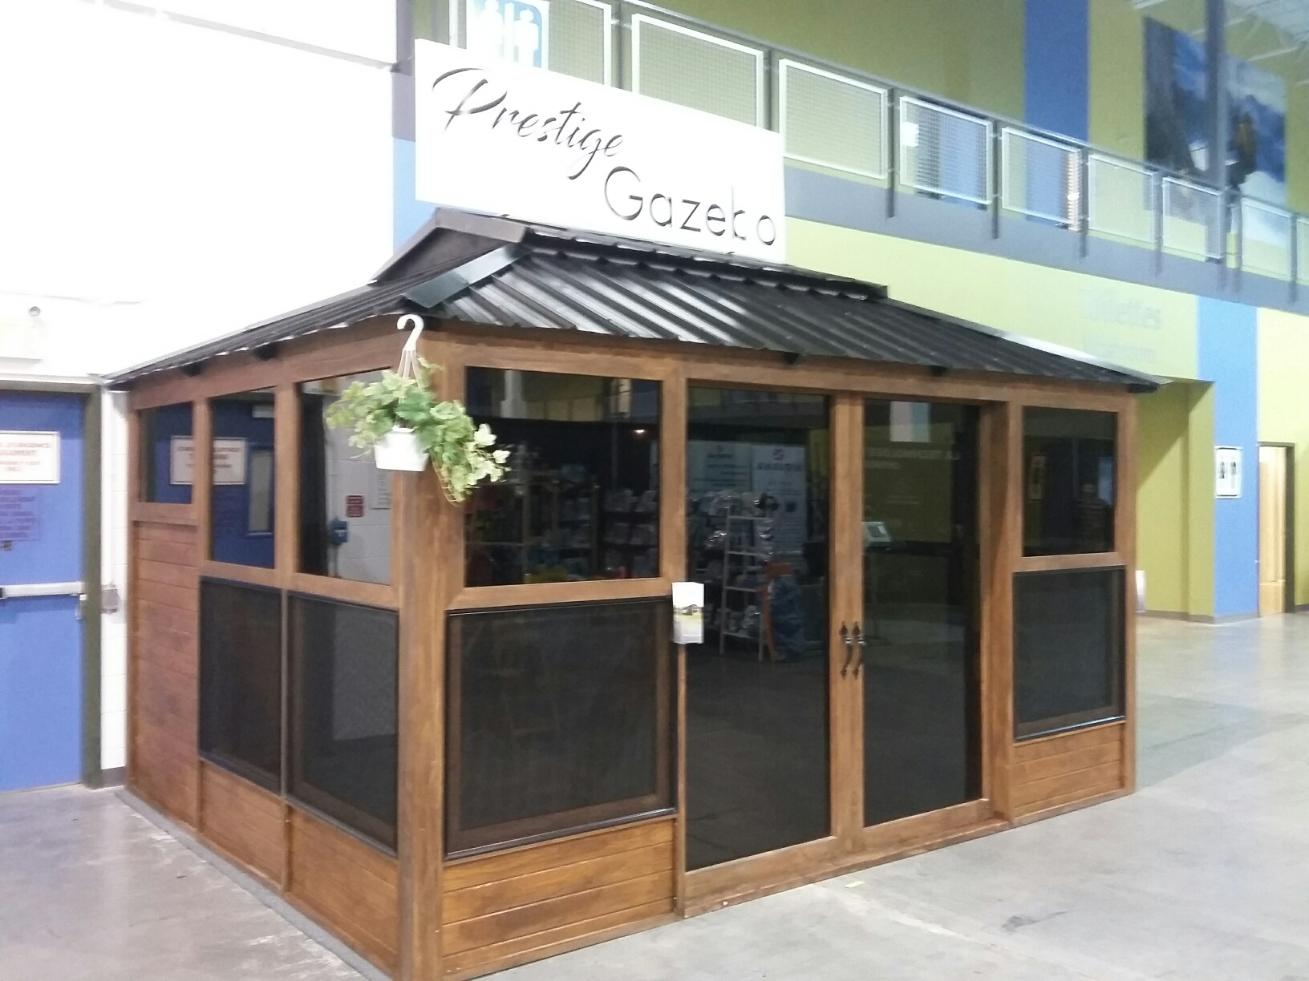 Prestige Wood Gazebo